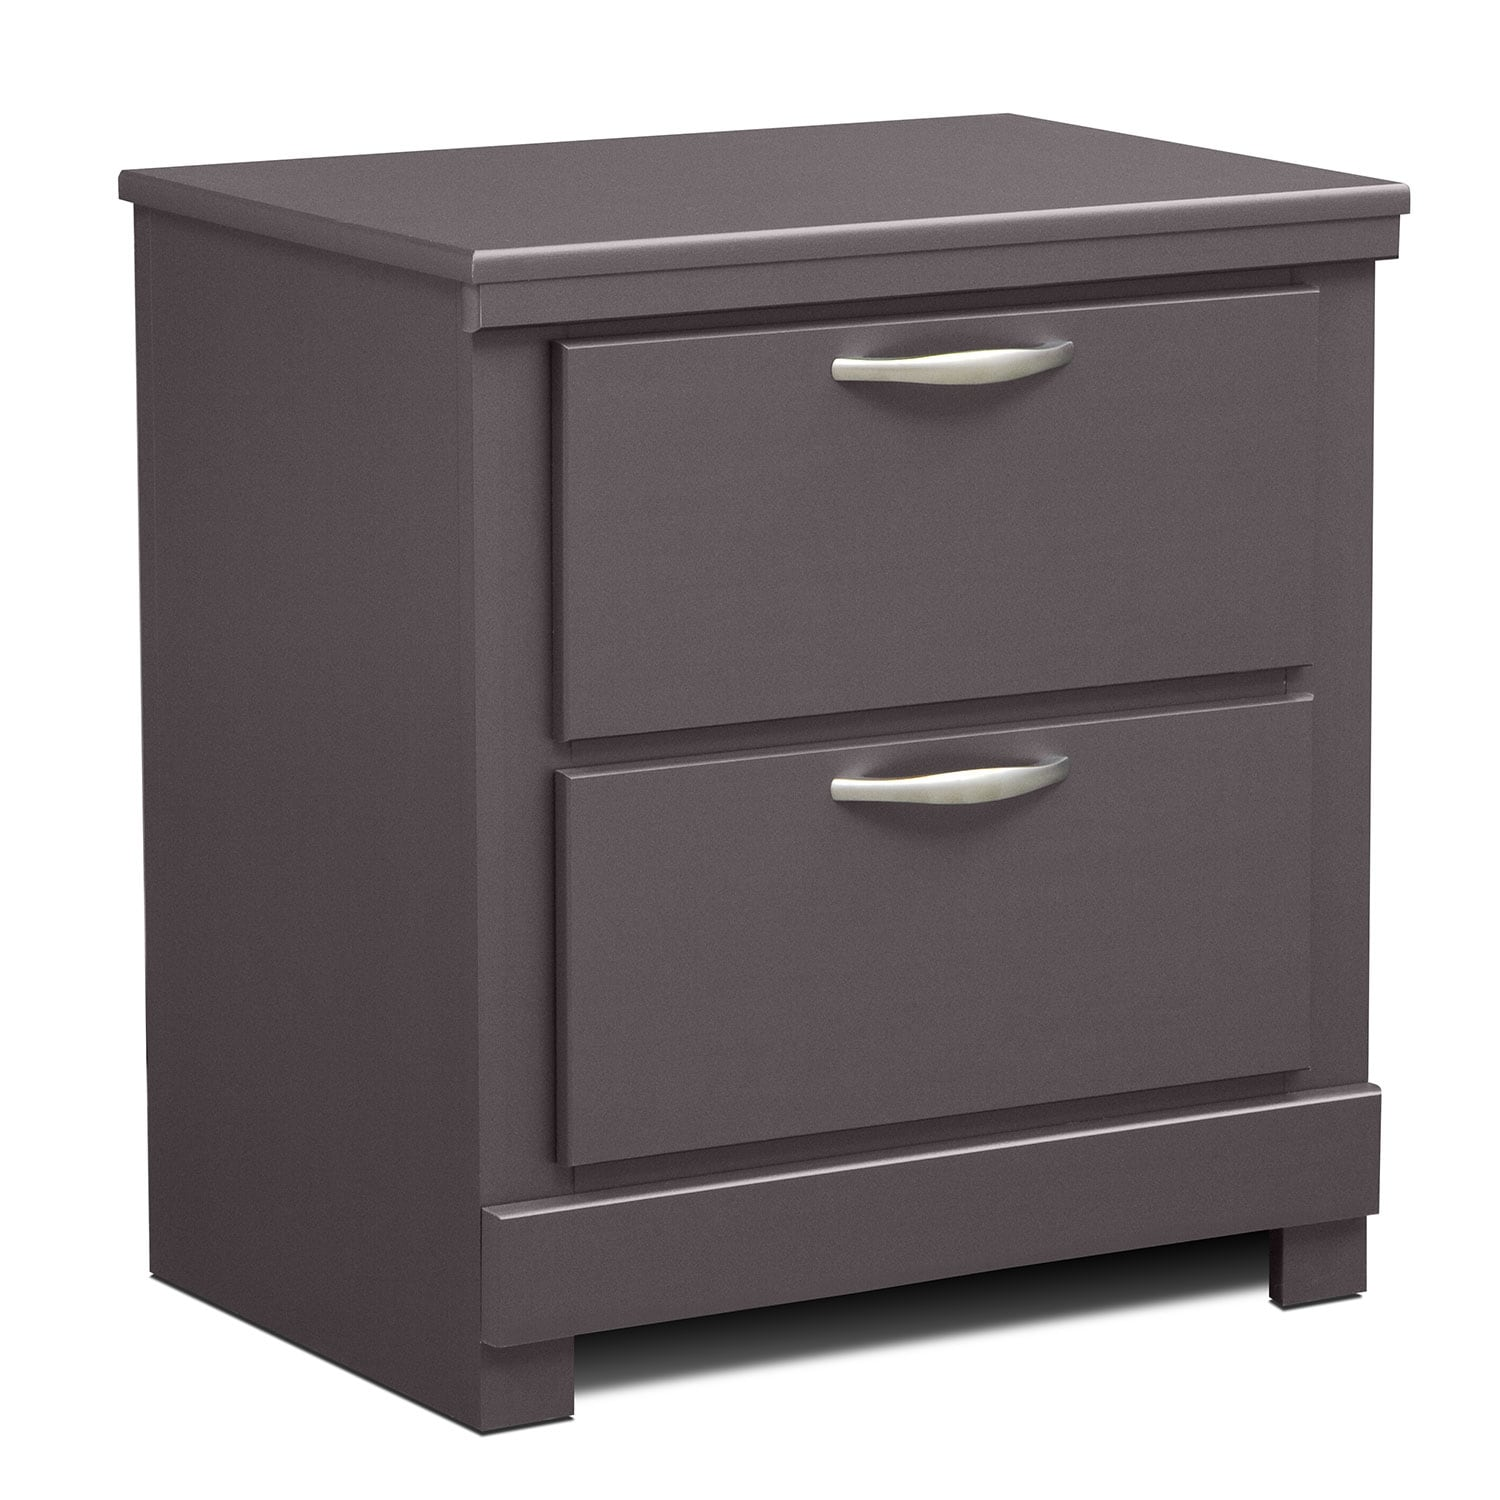 Kids Furniture - Combi II Nightstand